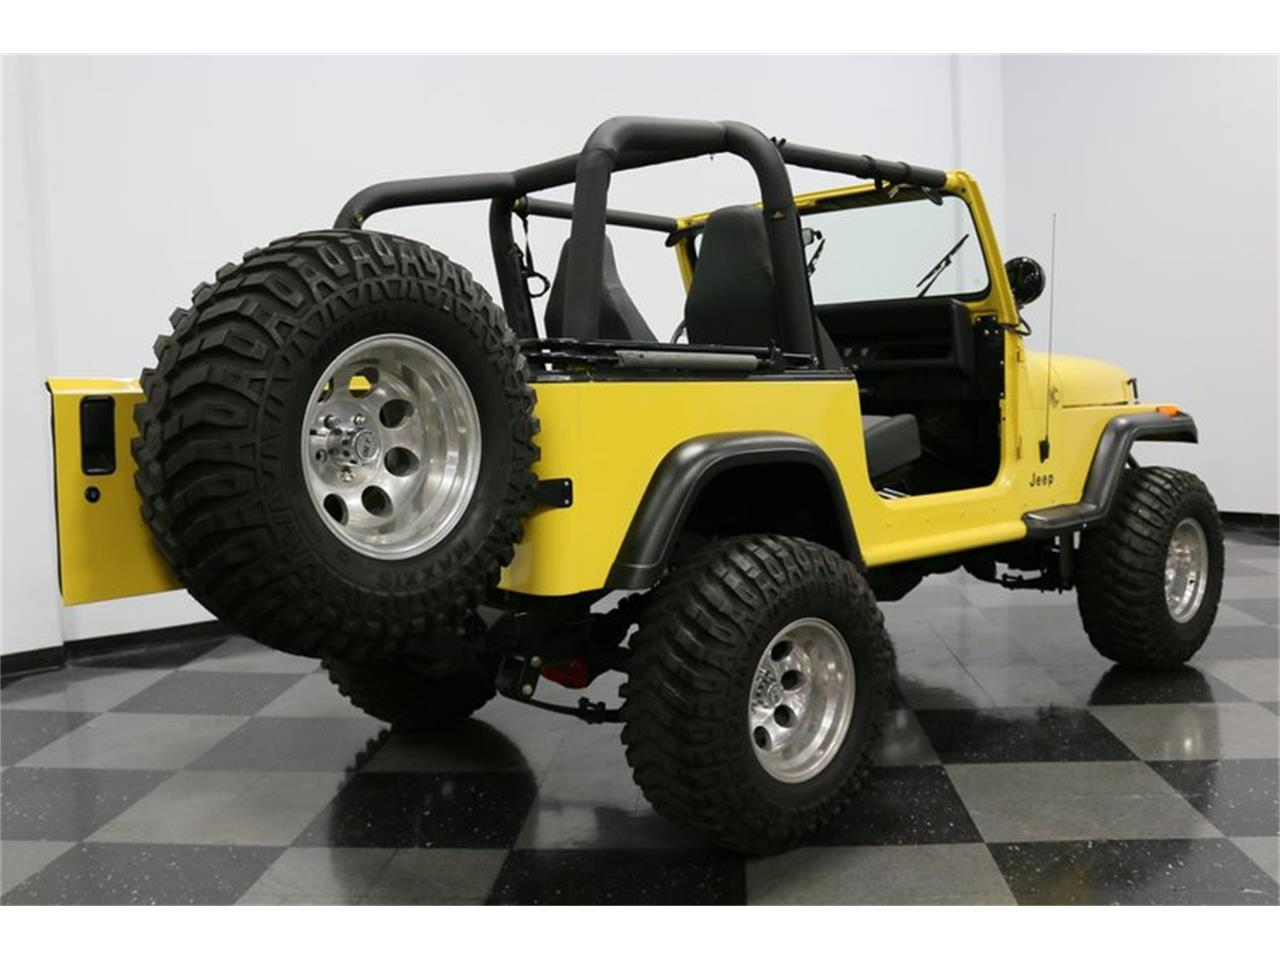 Large Picture of 1993 Jeep Wrangler located in Ft Worth Texas - $21,995.00 Offered by Streetside Classics - Dallas / Fort Worth - P701